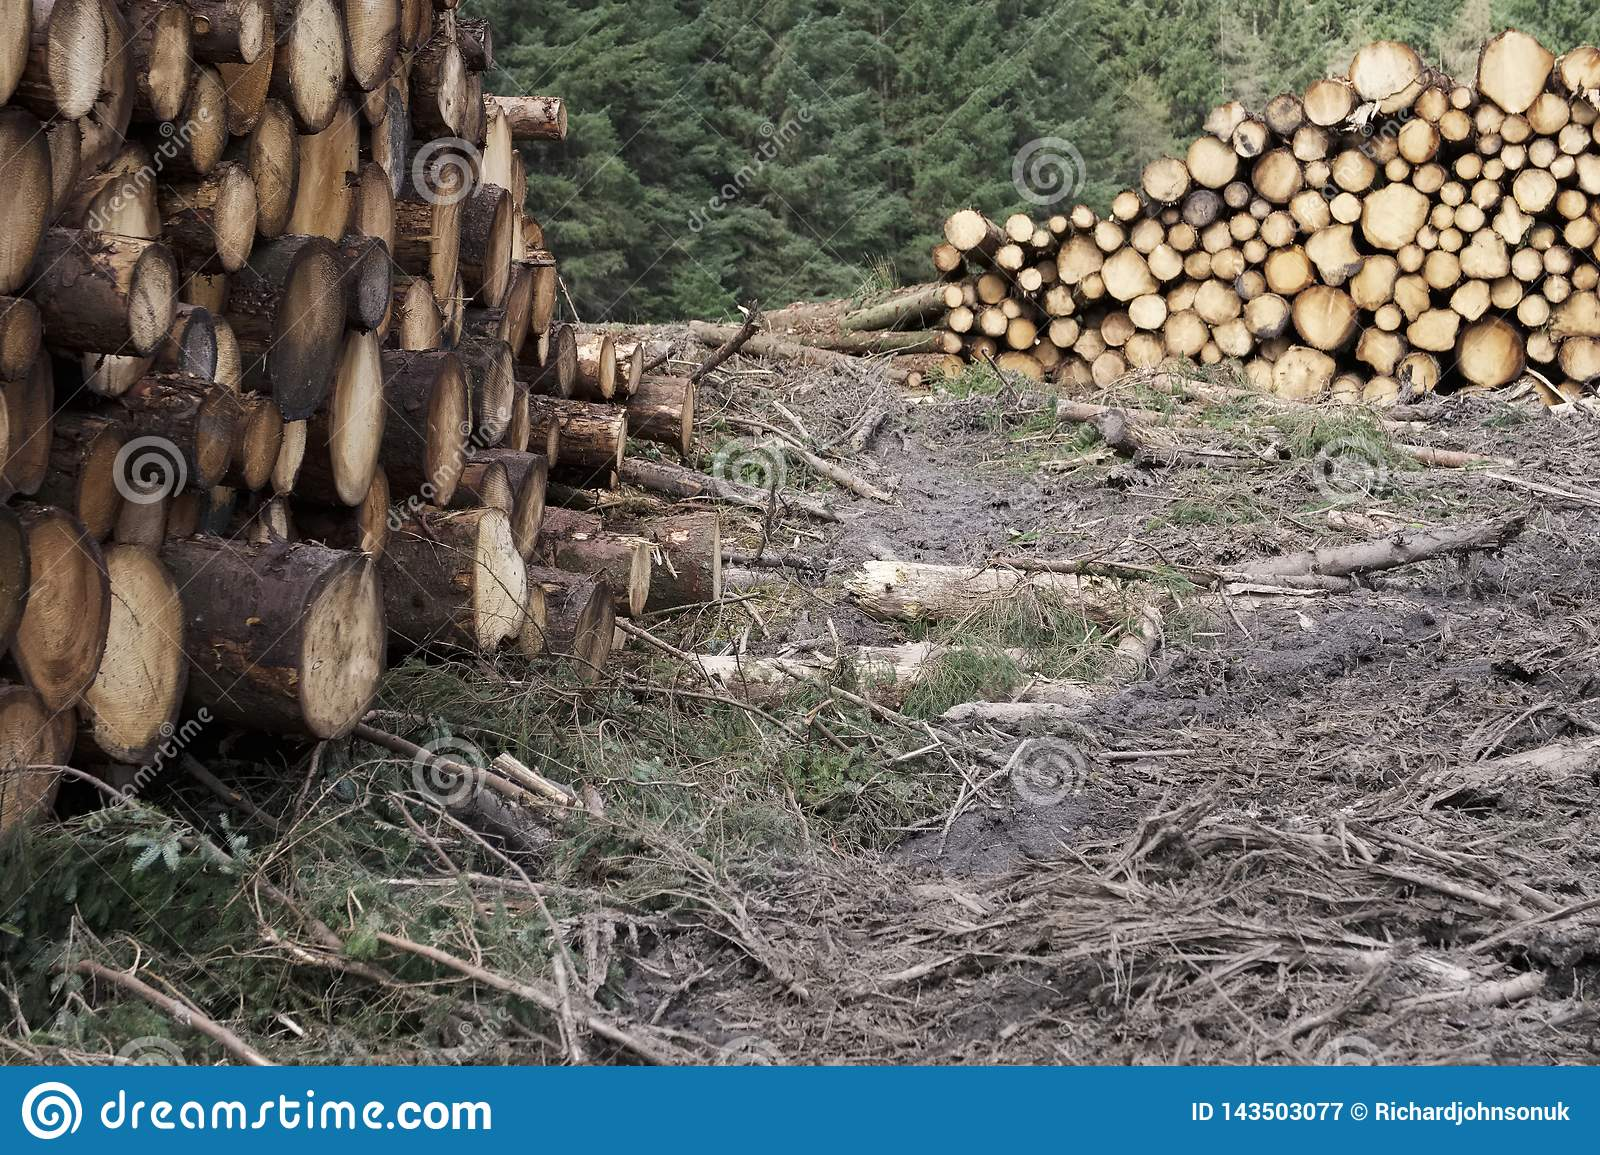 Chopped wood logs stack for fire place at home on forest woodlands green biomass energy